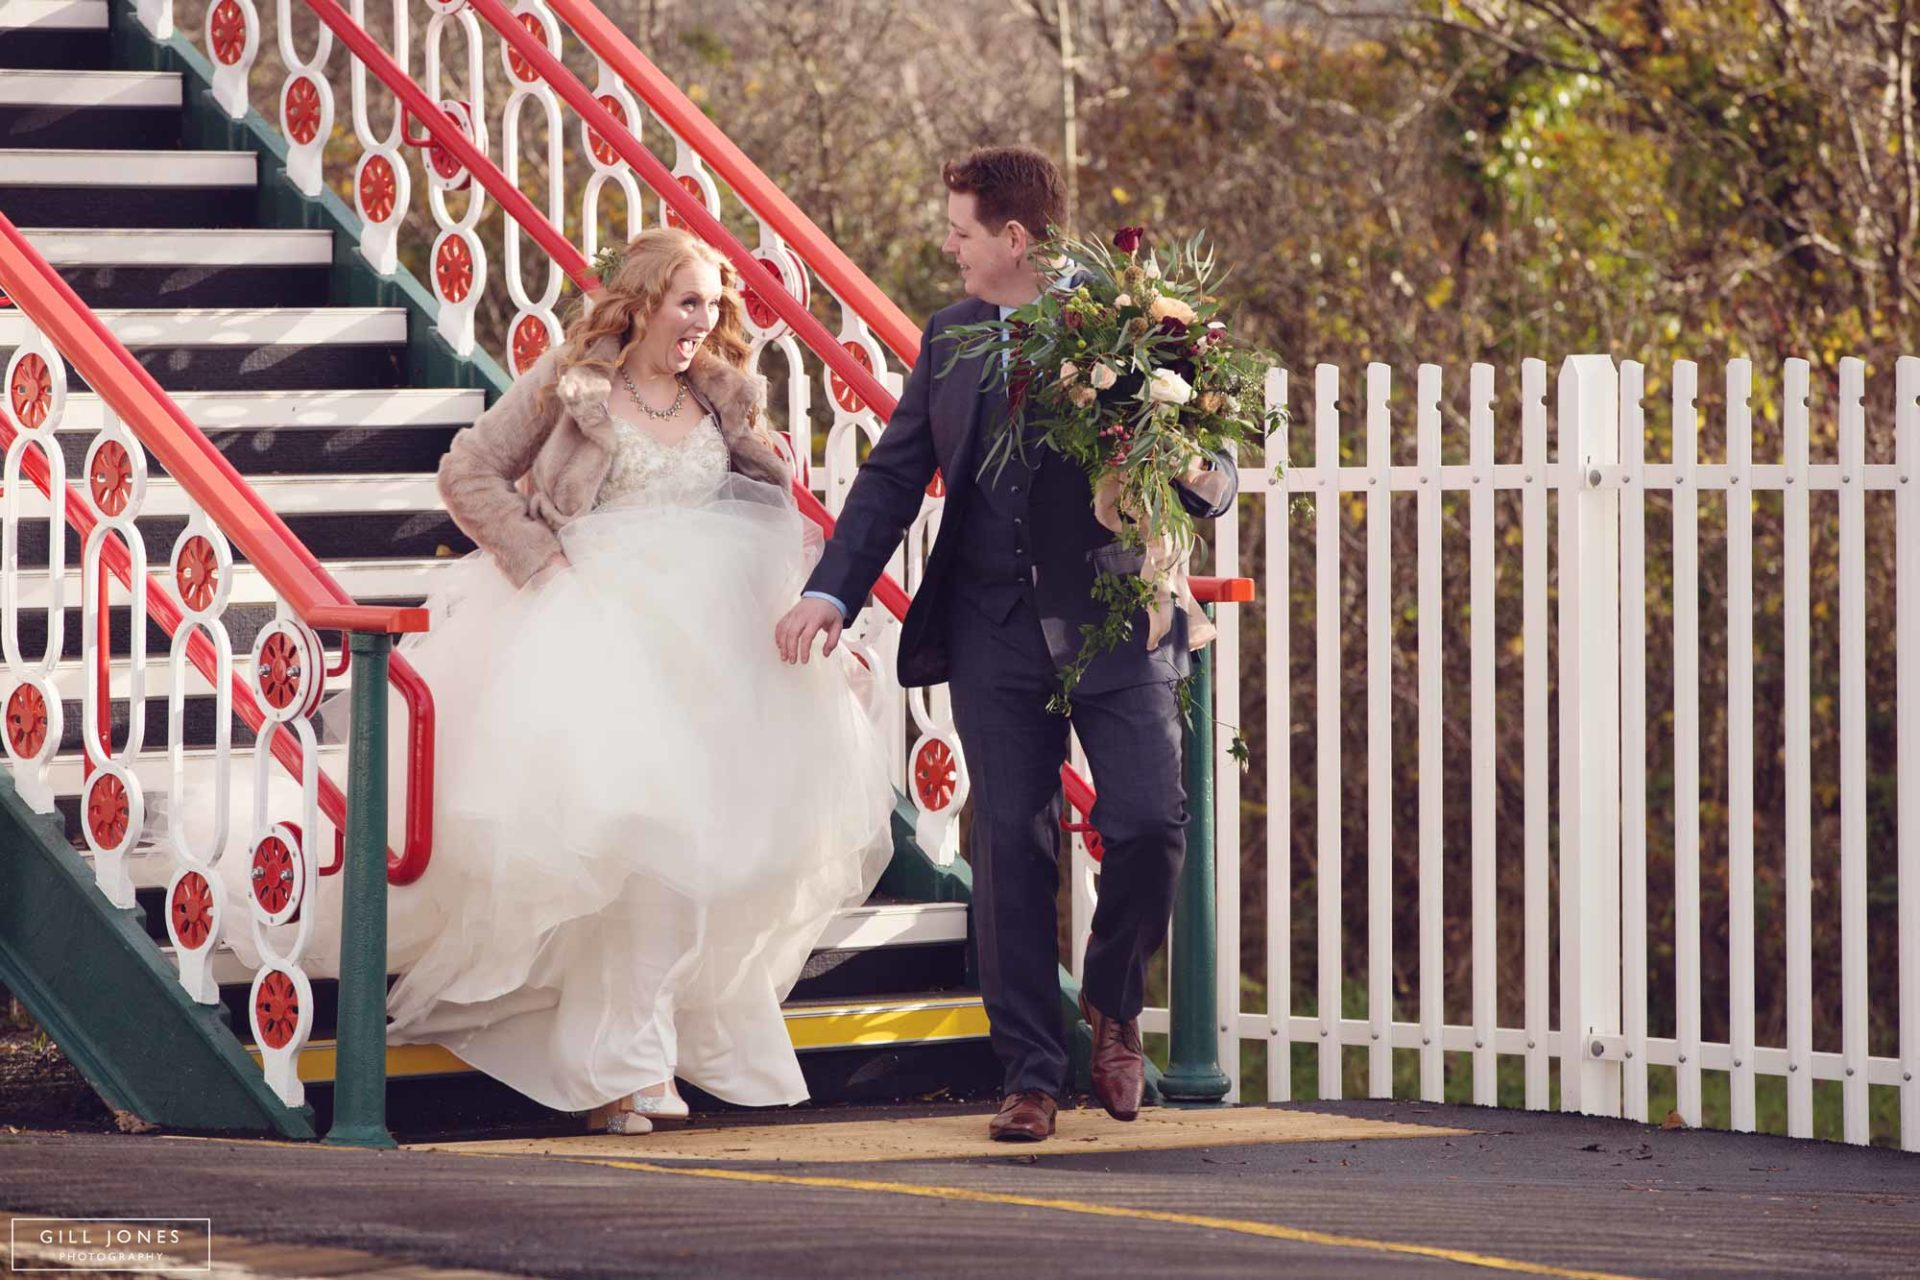 bride and groom hurrying along a train station platform